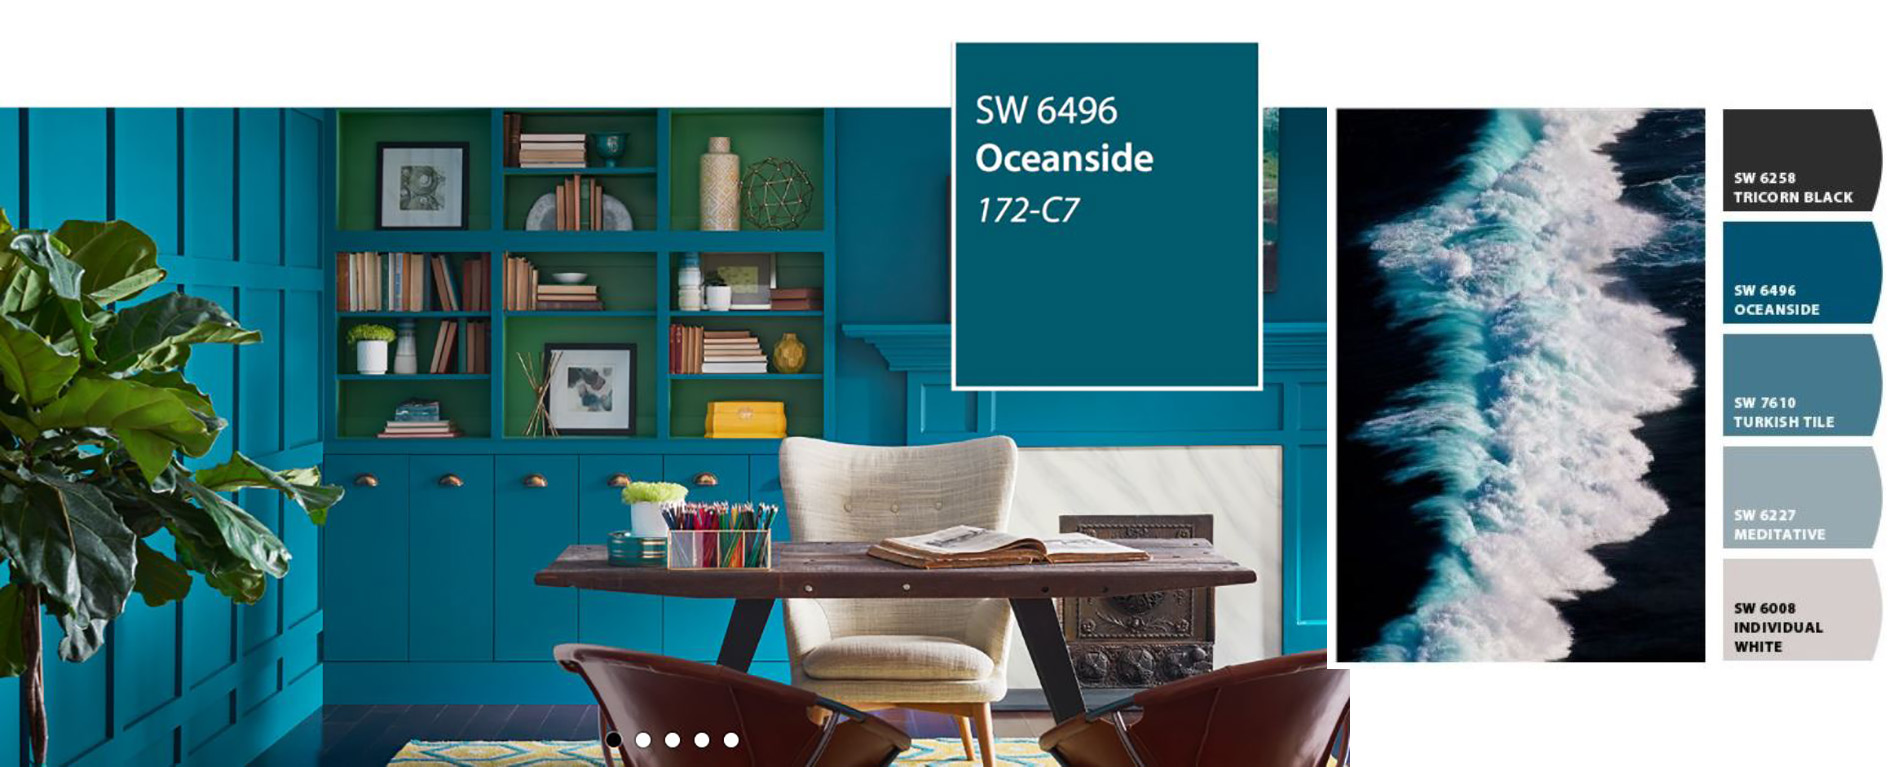 SW 6496 Oceanside Color of the Year2.jpg